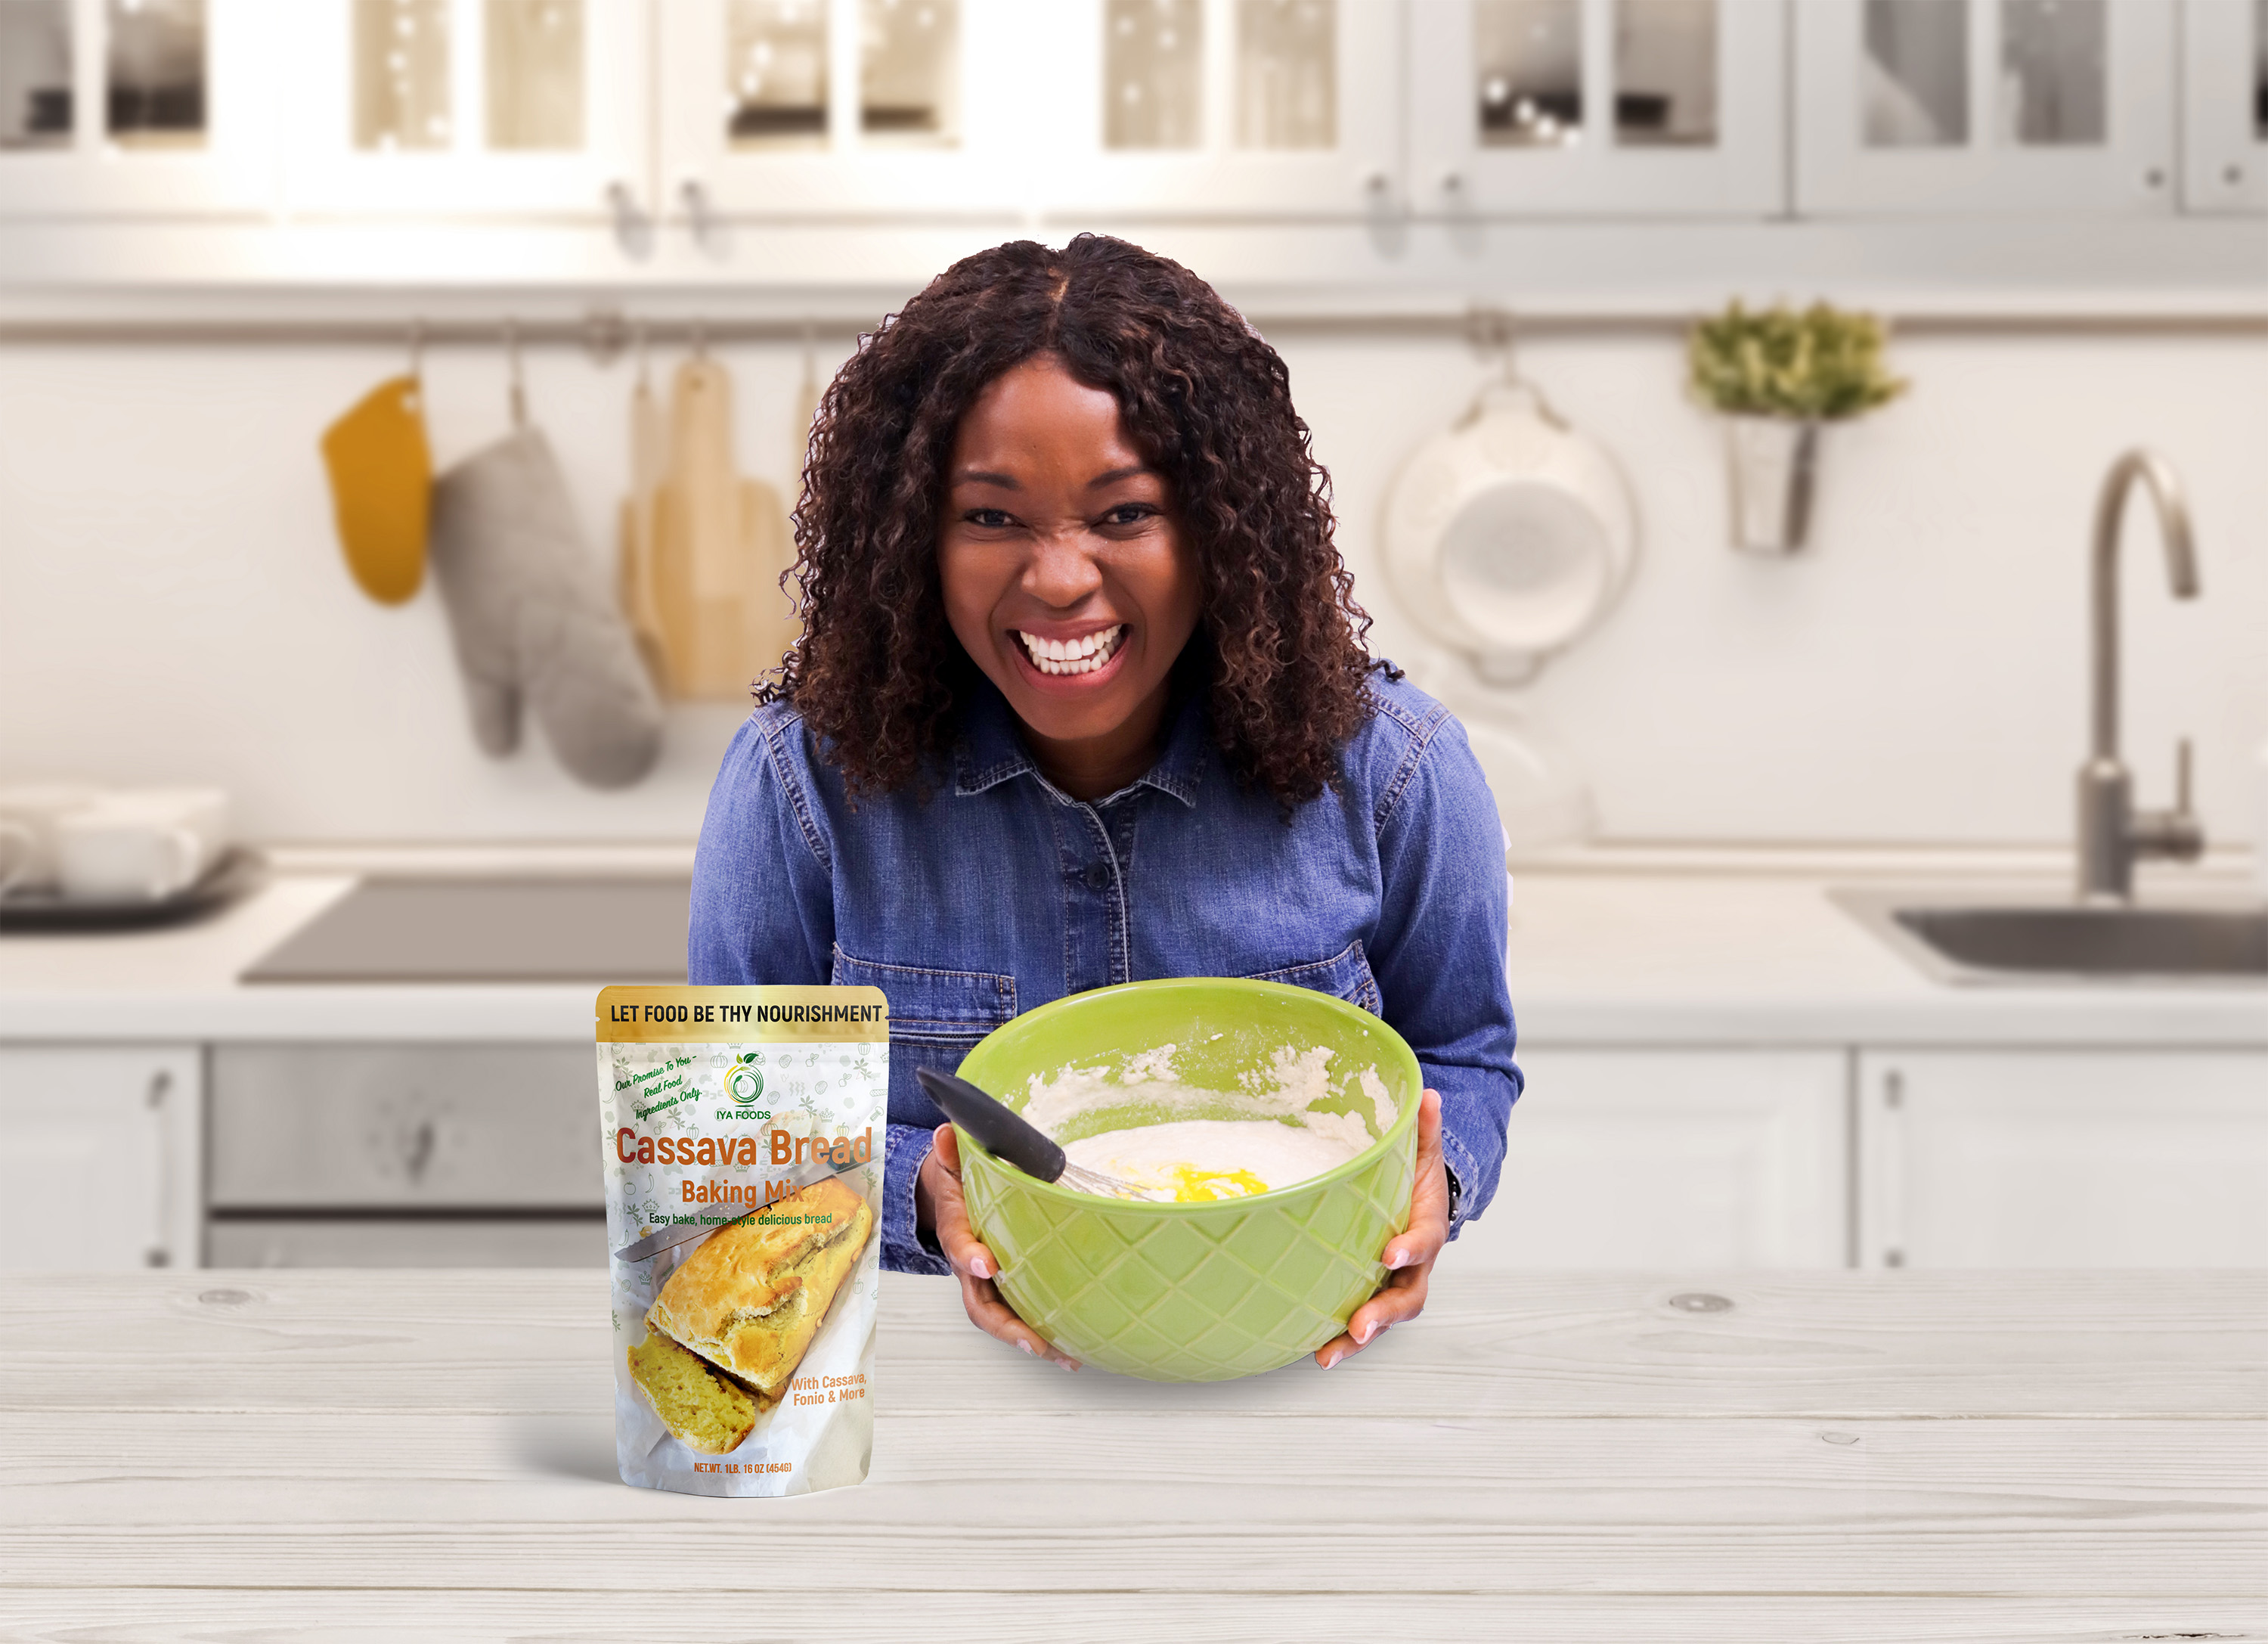 Local entrepreneur Toyin Kolawole started her own superfoods company, Iya Foods, selling easy one-pot mixes, baking mixes, vegetable powders, spices and seasonings, based on the foods she grew up with in Nigeria.